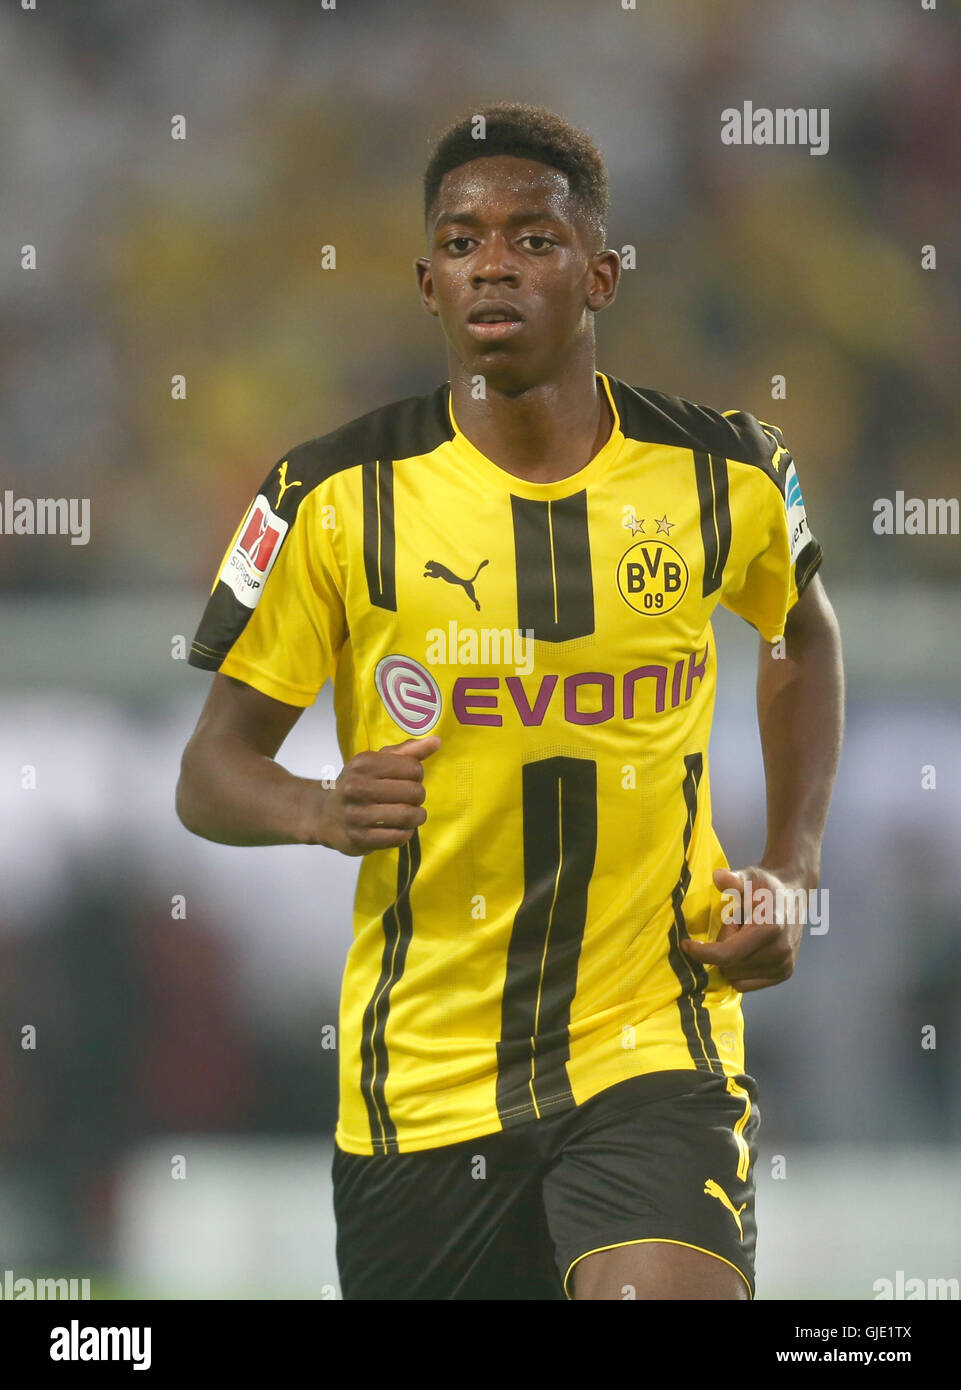 Dortmund, Germany. 14th Aug, 2016. Dortmun's Ousmane Dembele in action during the DFL Supercup soccer match - Stock Image